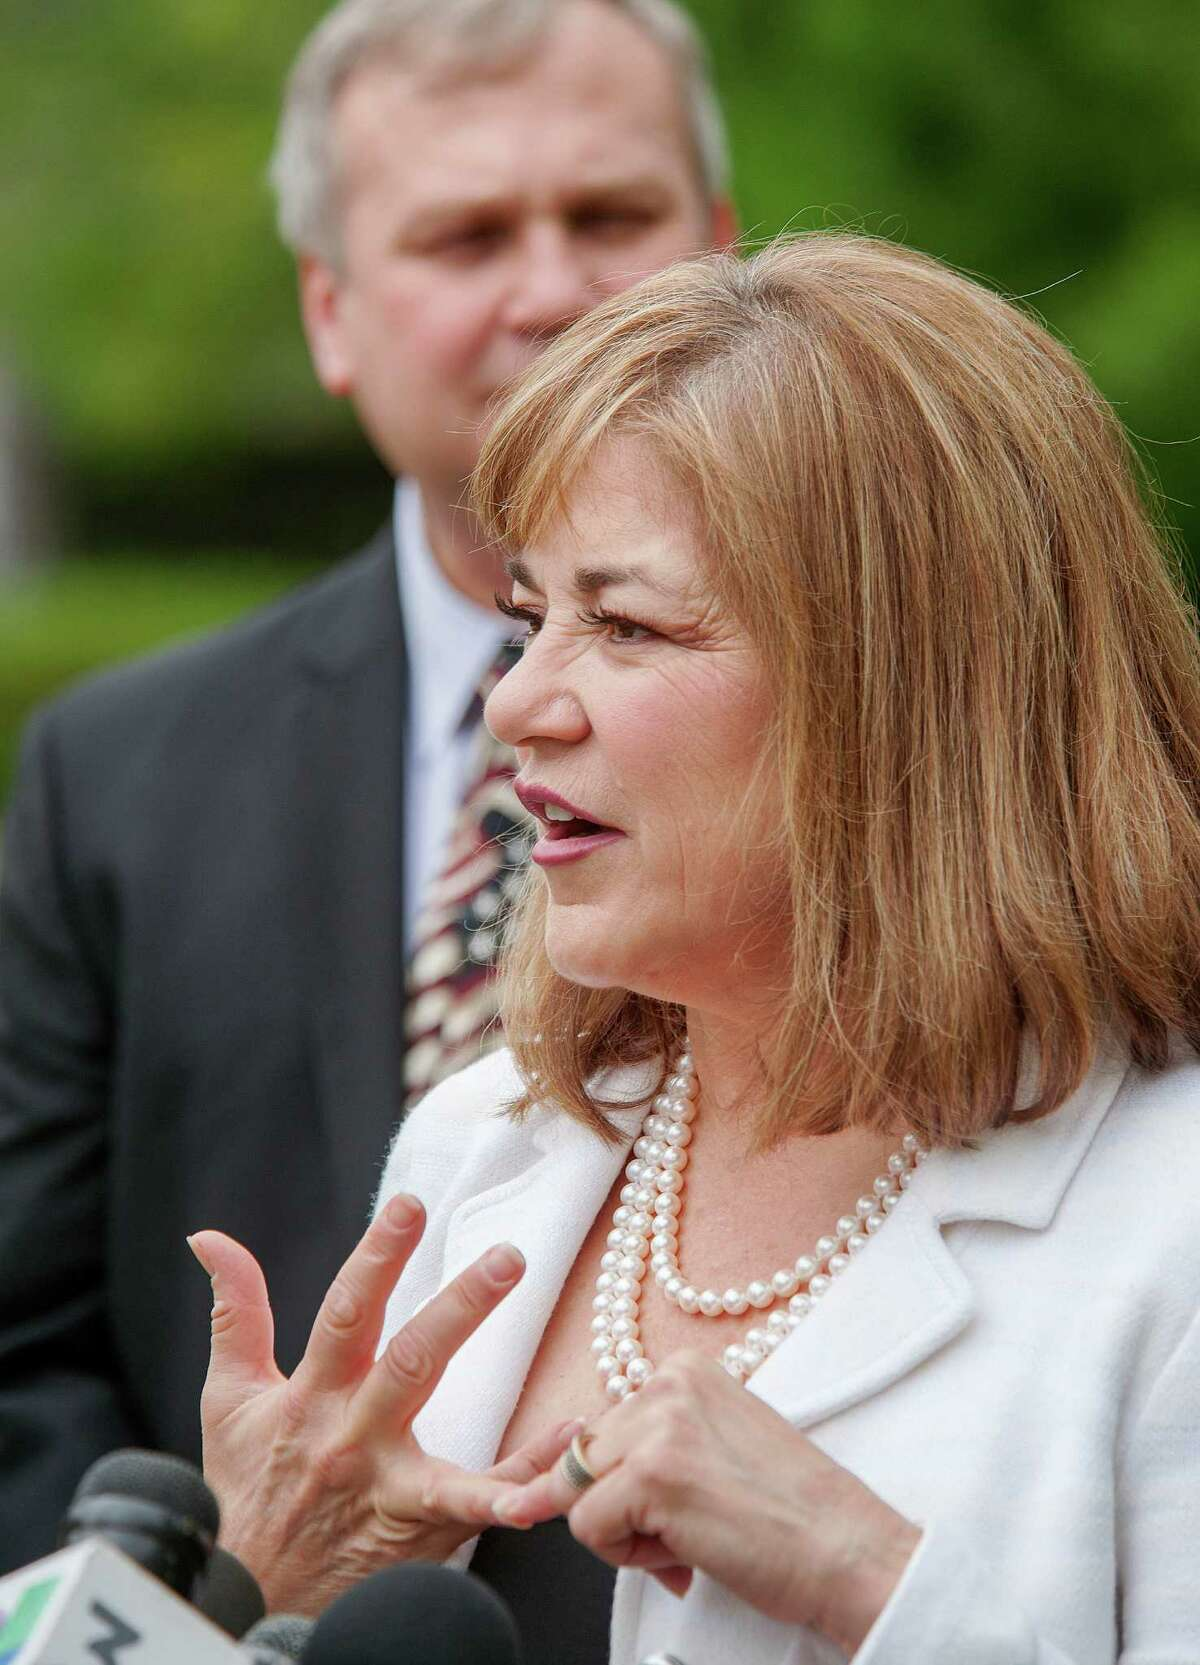 U.S. Rep. Loretta Sanchez answers questions after casting her ballot during a short press conference as her husband Jack Einwechter of Orange listens, Tuesday, June 7, 2016, at Orange High School, in Orange, Calif. Sanchez is running against California Attorney General Kamala Harris for the United States Senate seat replacing retiring Sen. Barbara Boxer.